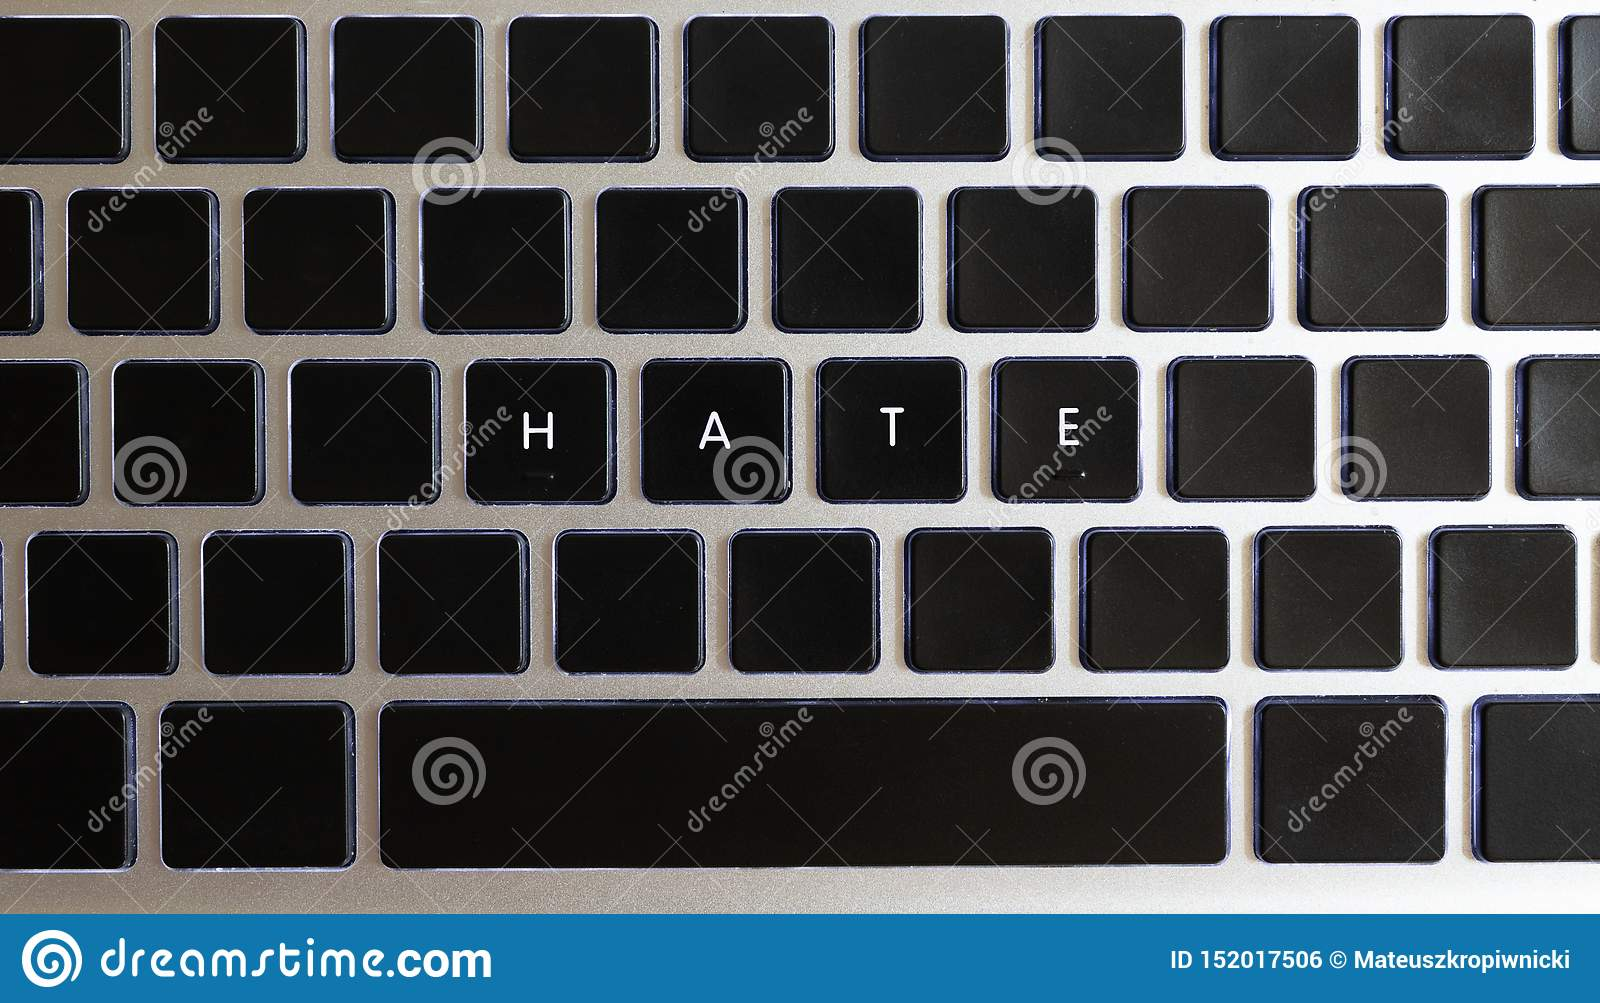 Concept of problems of today internet. Hate caption isolated on notebook keyboard with blank keys